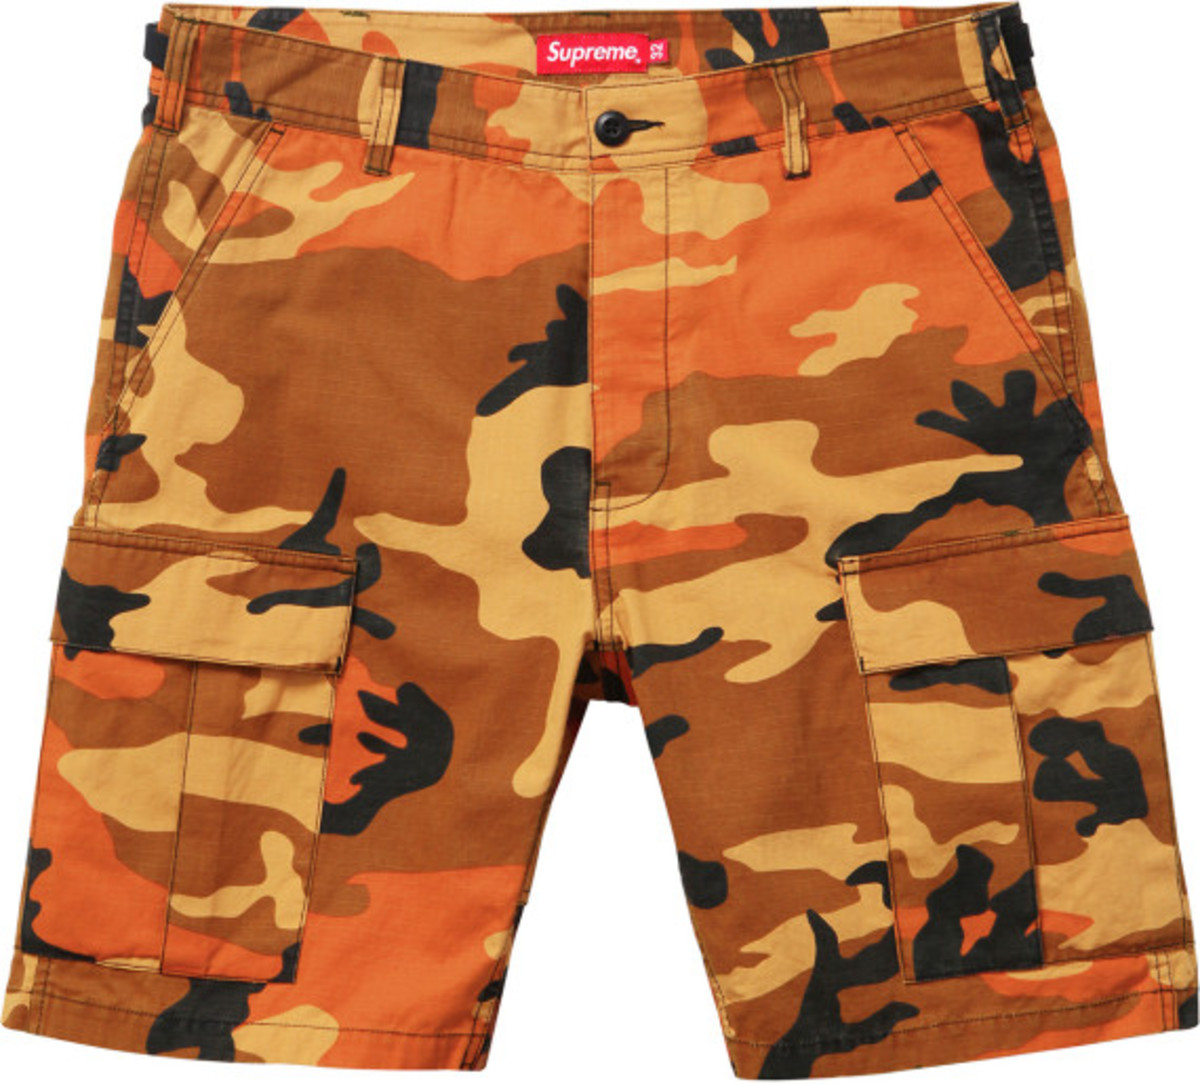 supreme-spring-summer-2015-apparel-collection-73